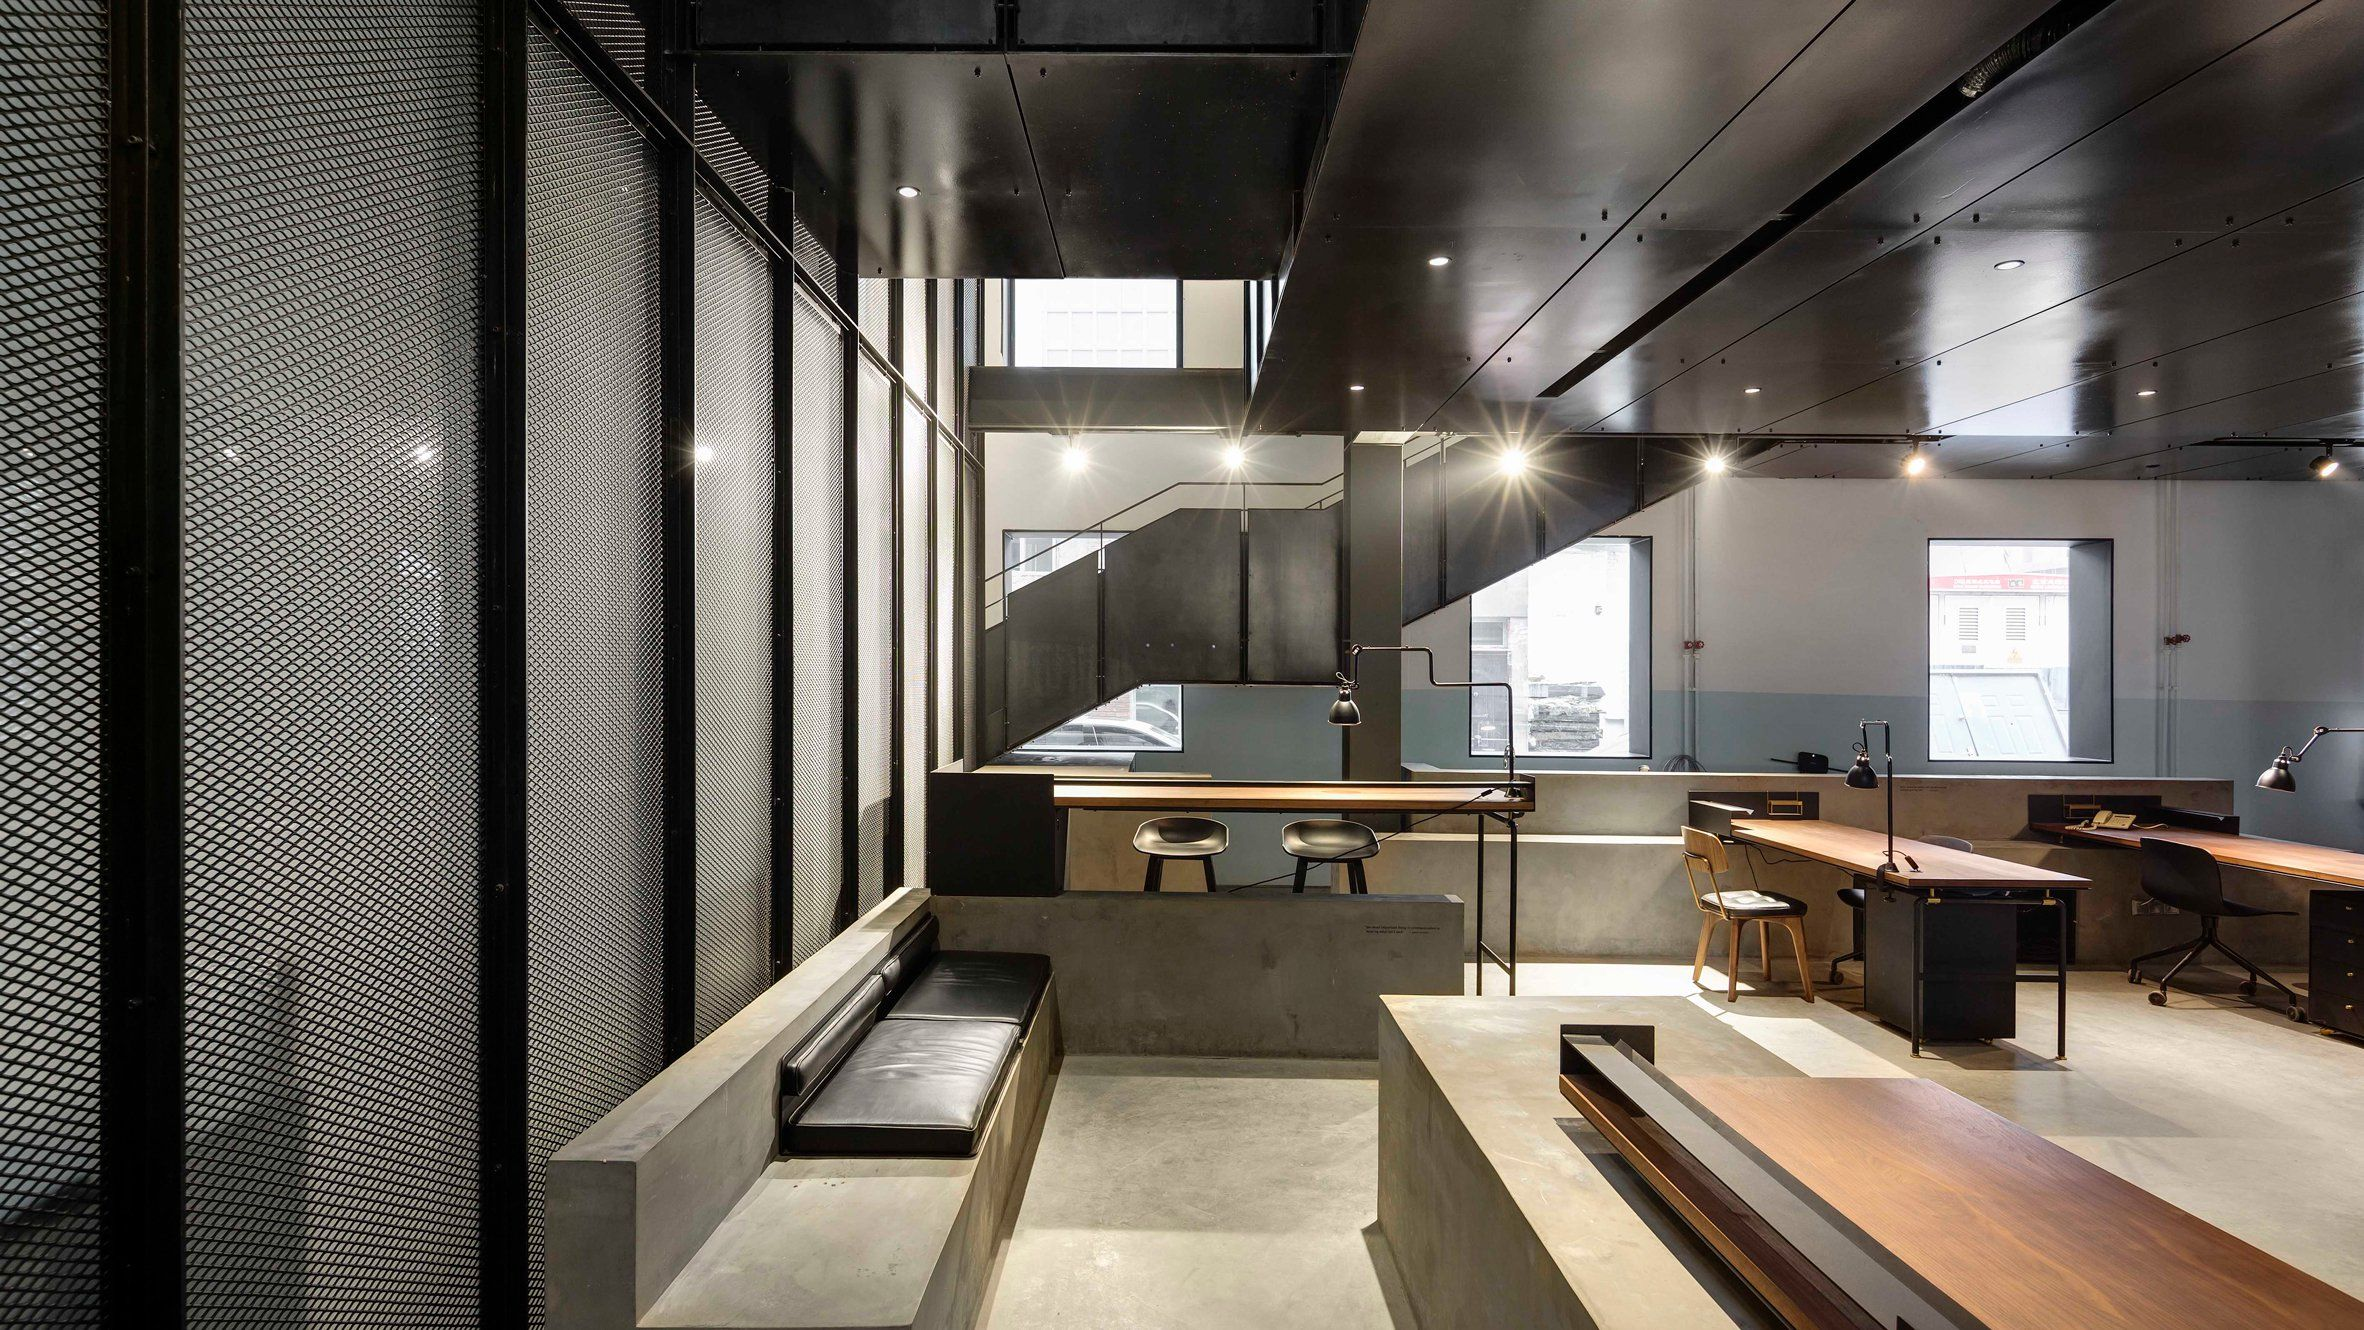 The Garage By Neri Hu Desing Style In Architecture Pinterest